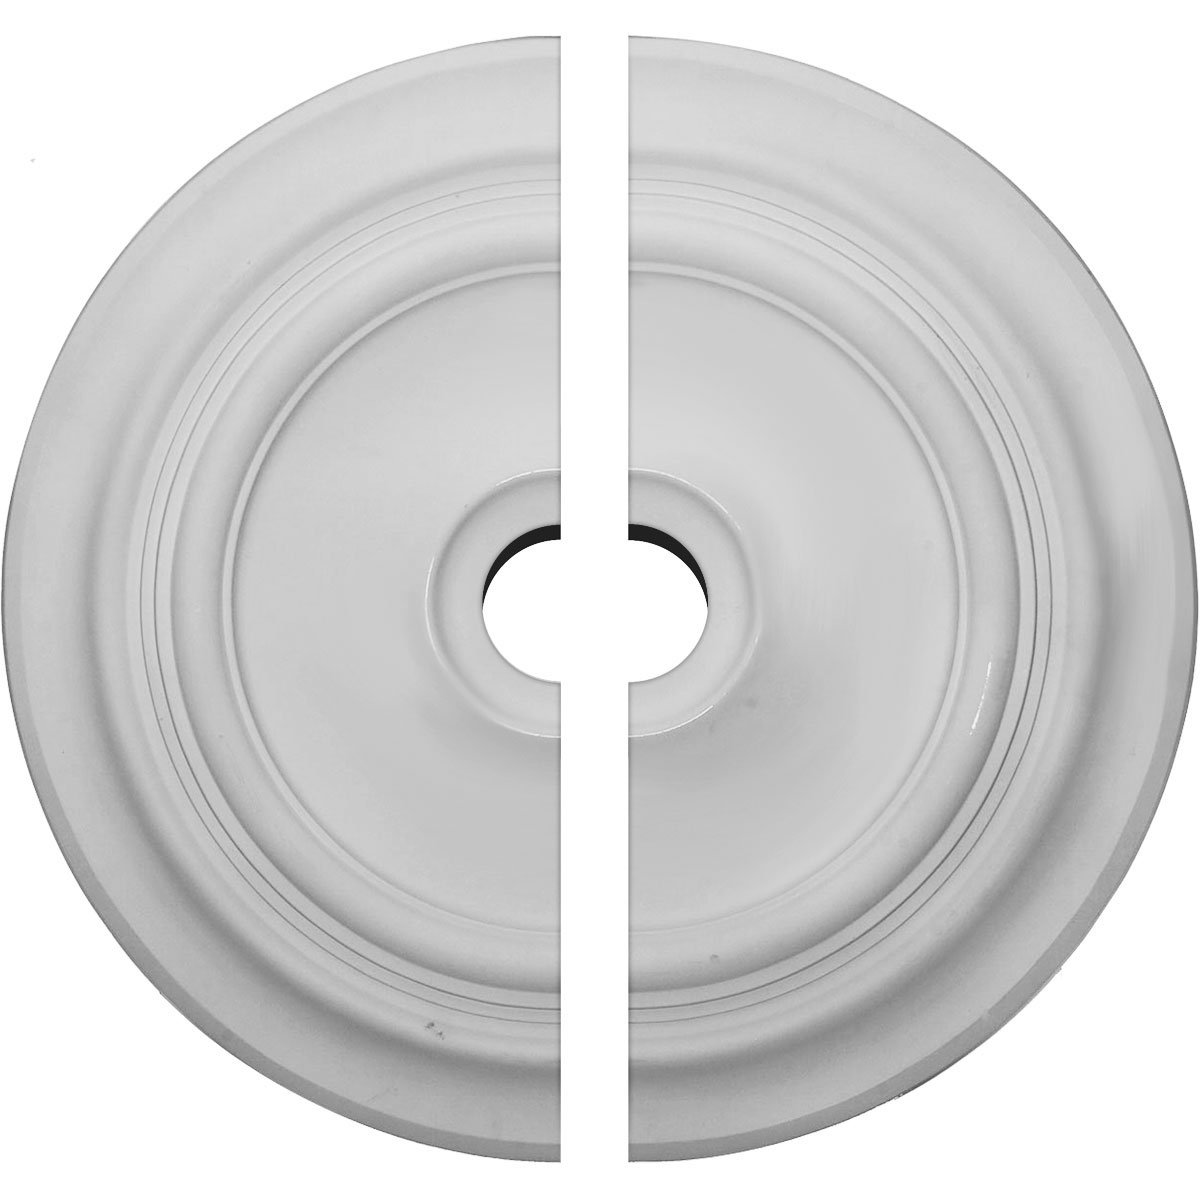 Ekena Millwork CM24TR2-03500 24 3/8''OD x 3 1/2''ID x 1 1/2''P Traditional Ceiling Medallion, Fits Canopies up to 5-1/2'', 2 Piece